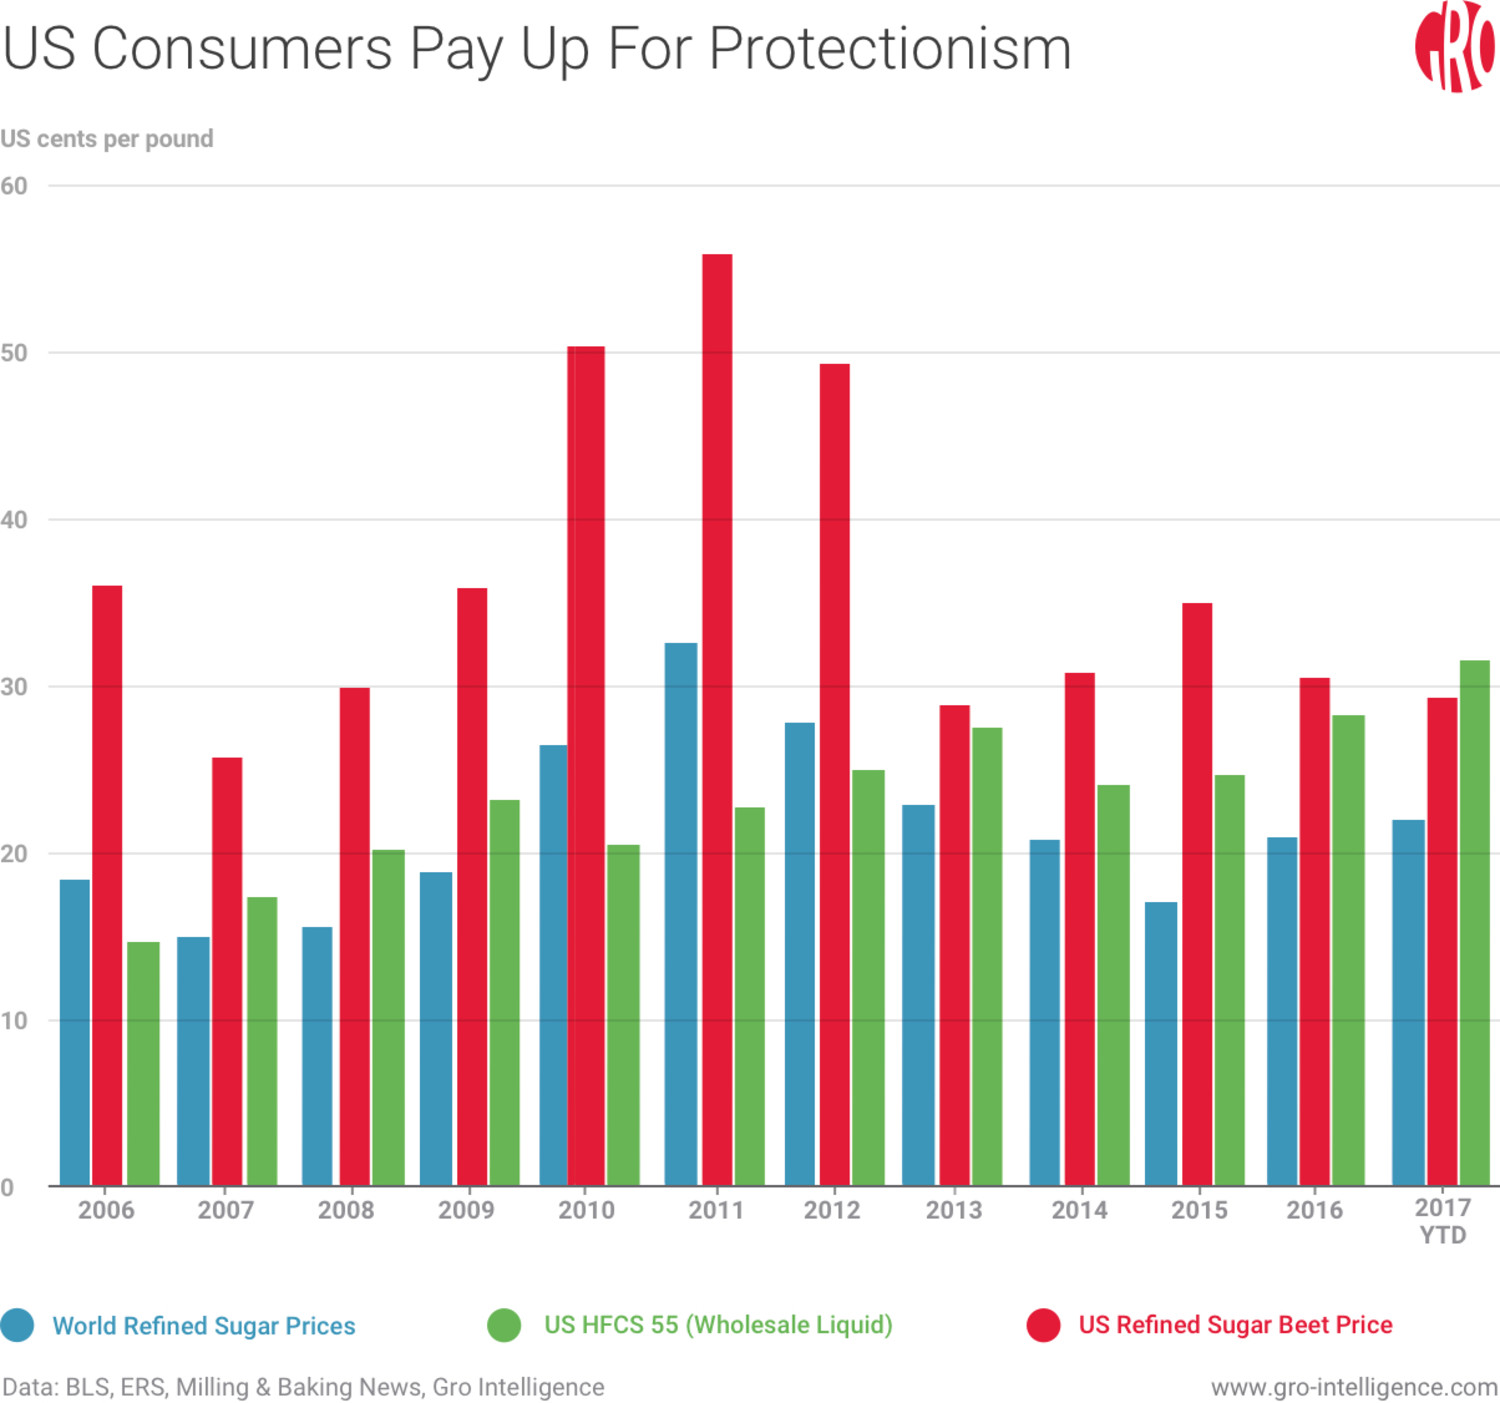 US Consumers Pay Up for Protectionism